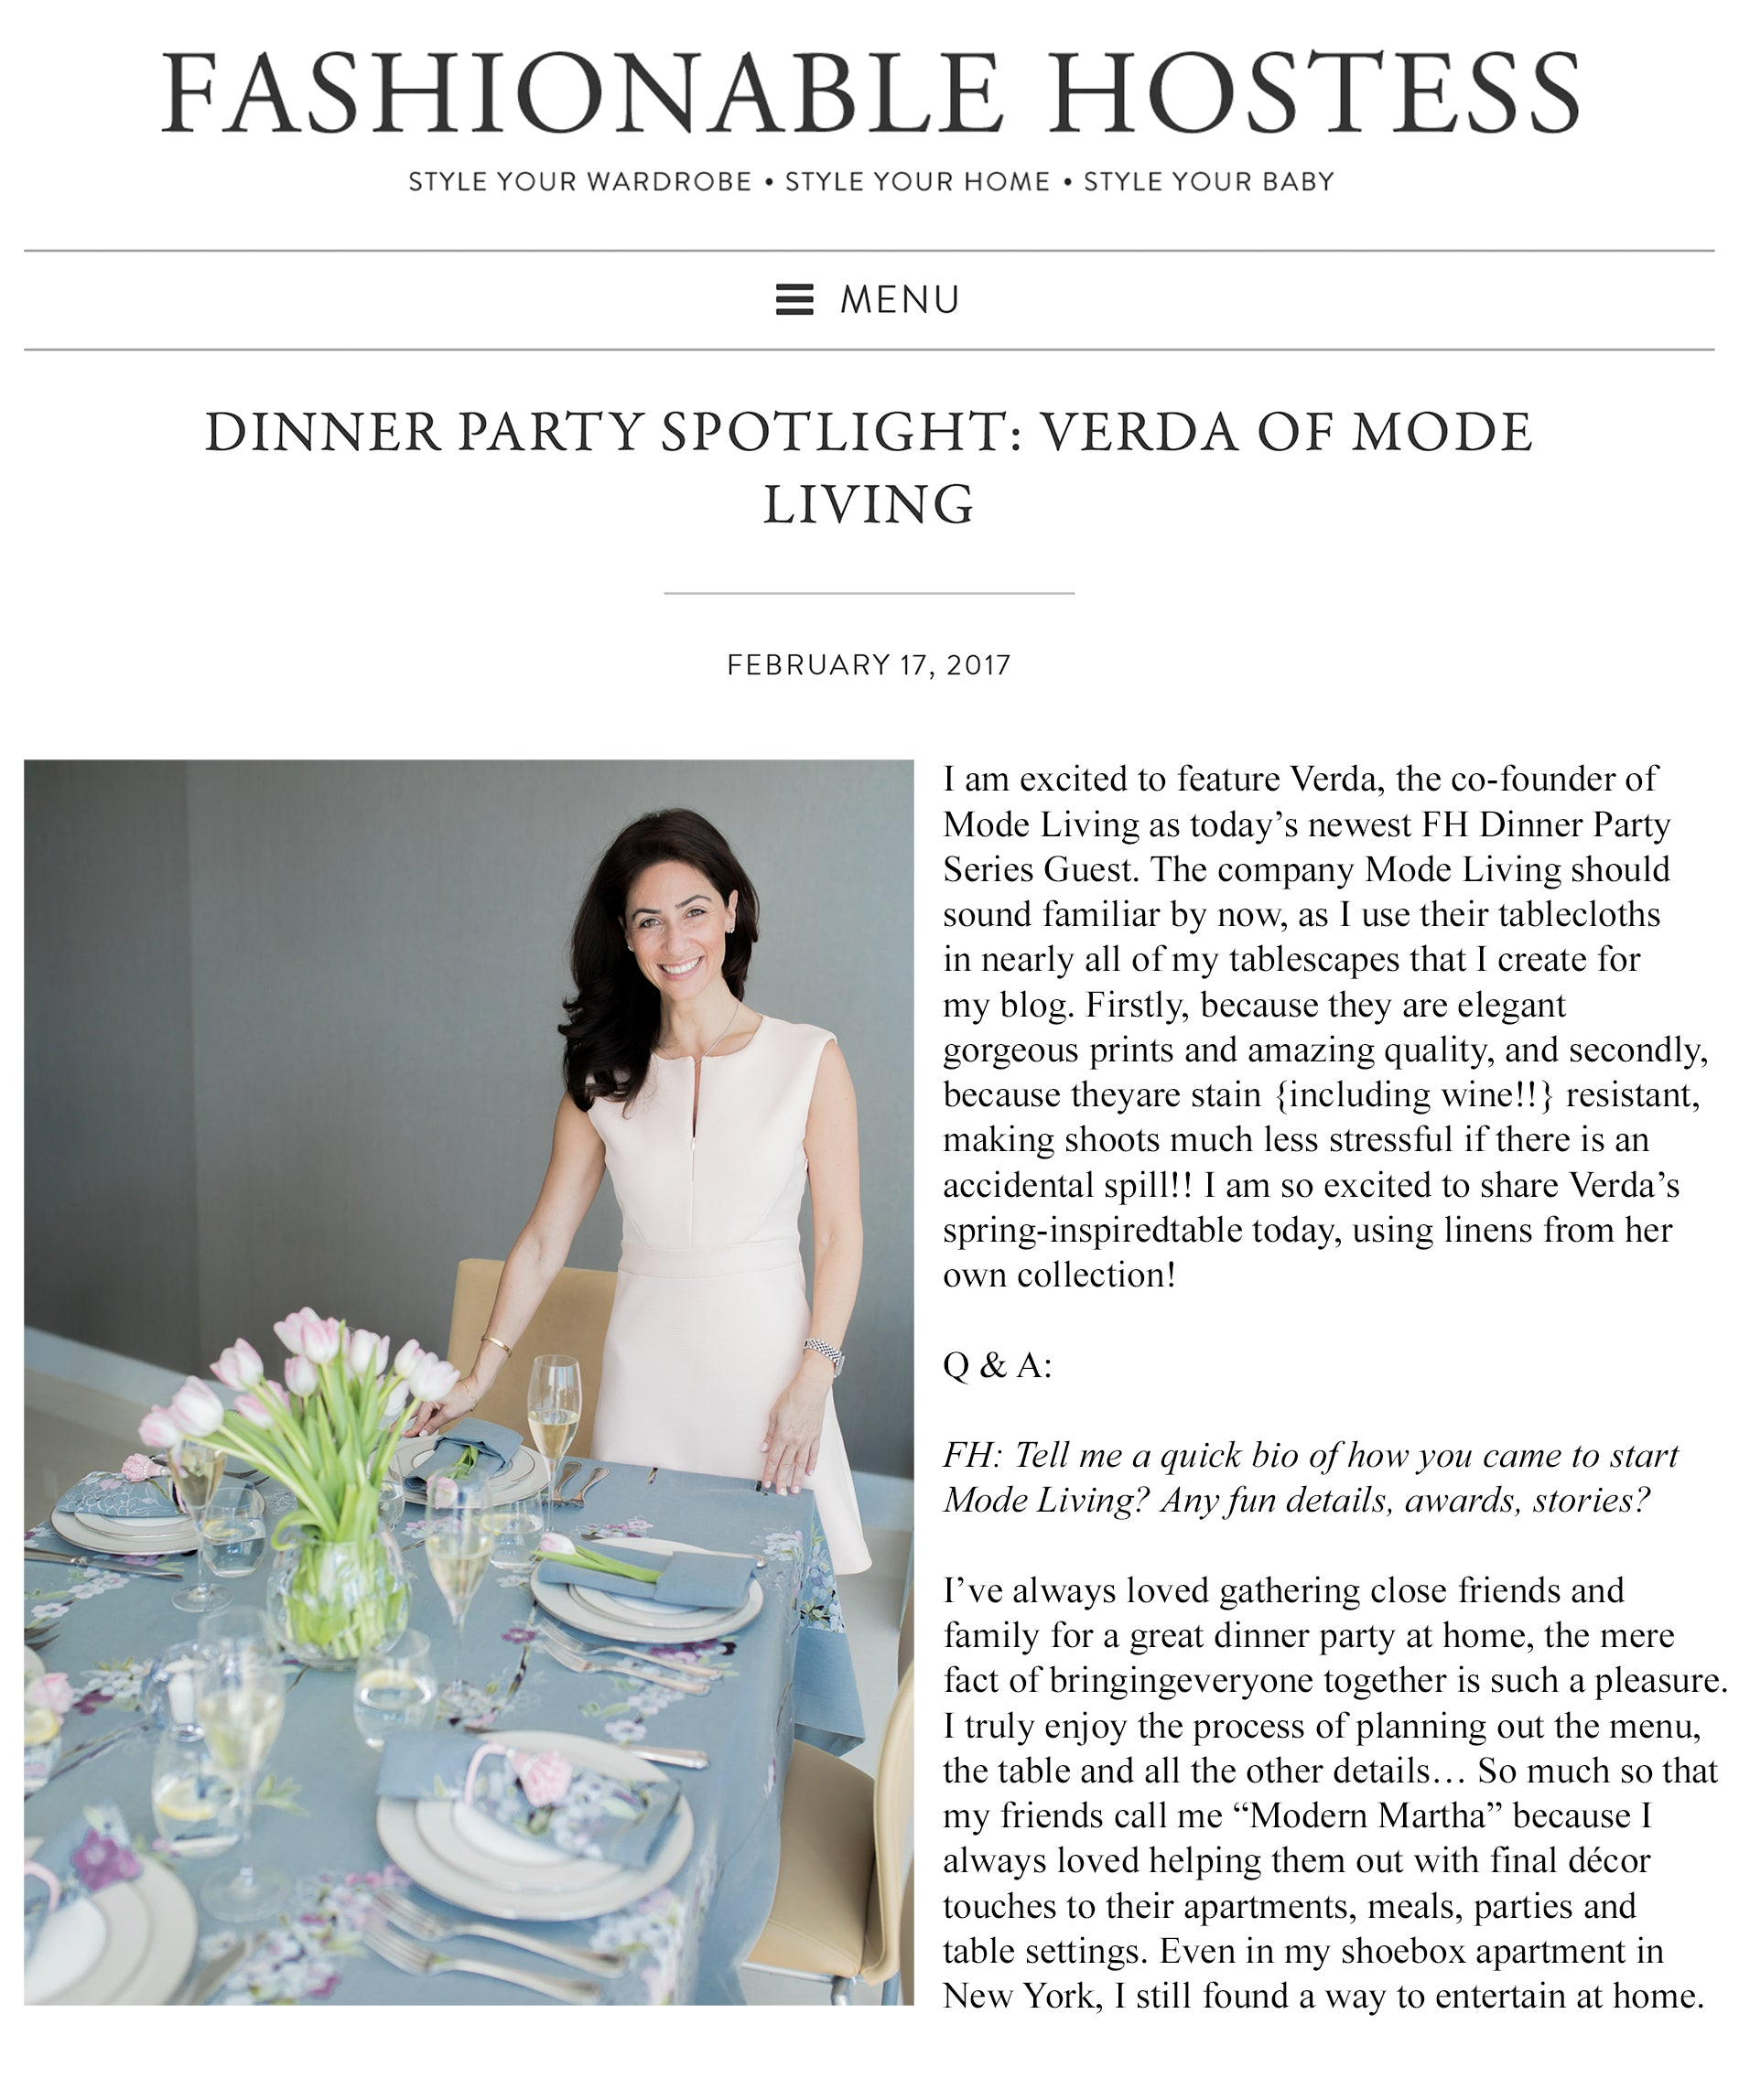 Fashionable Hostess Featuring Mode Living